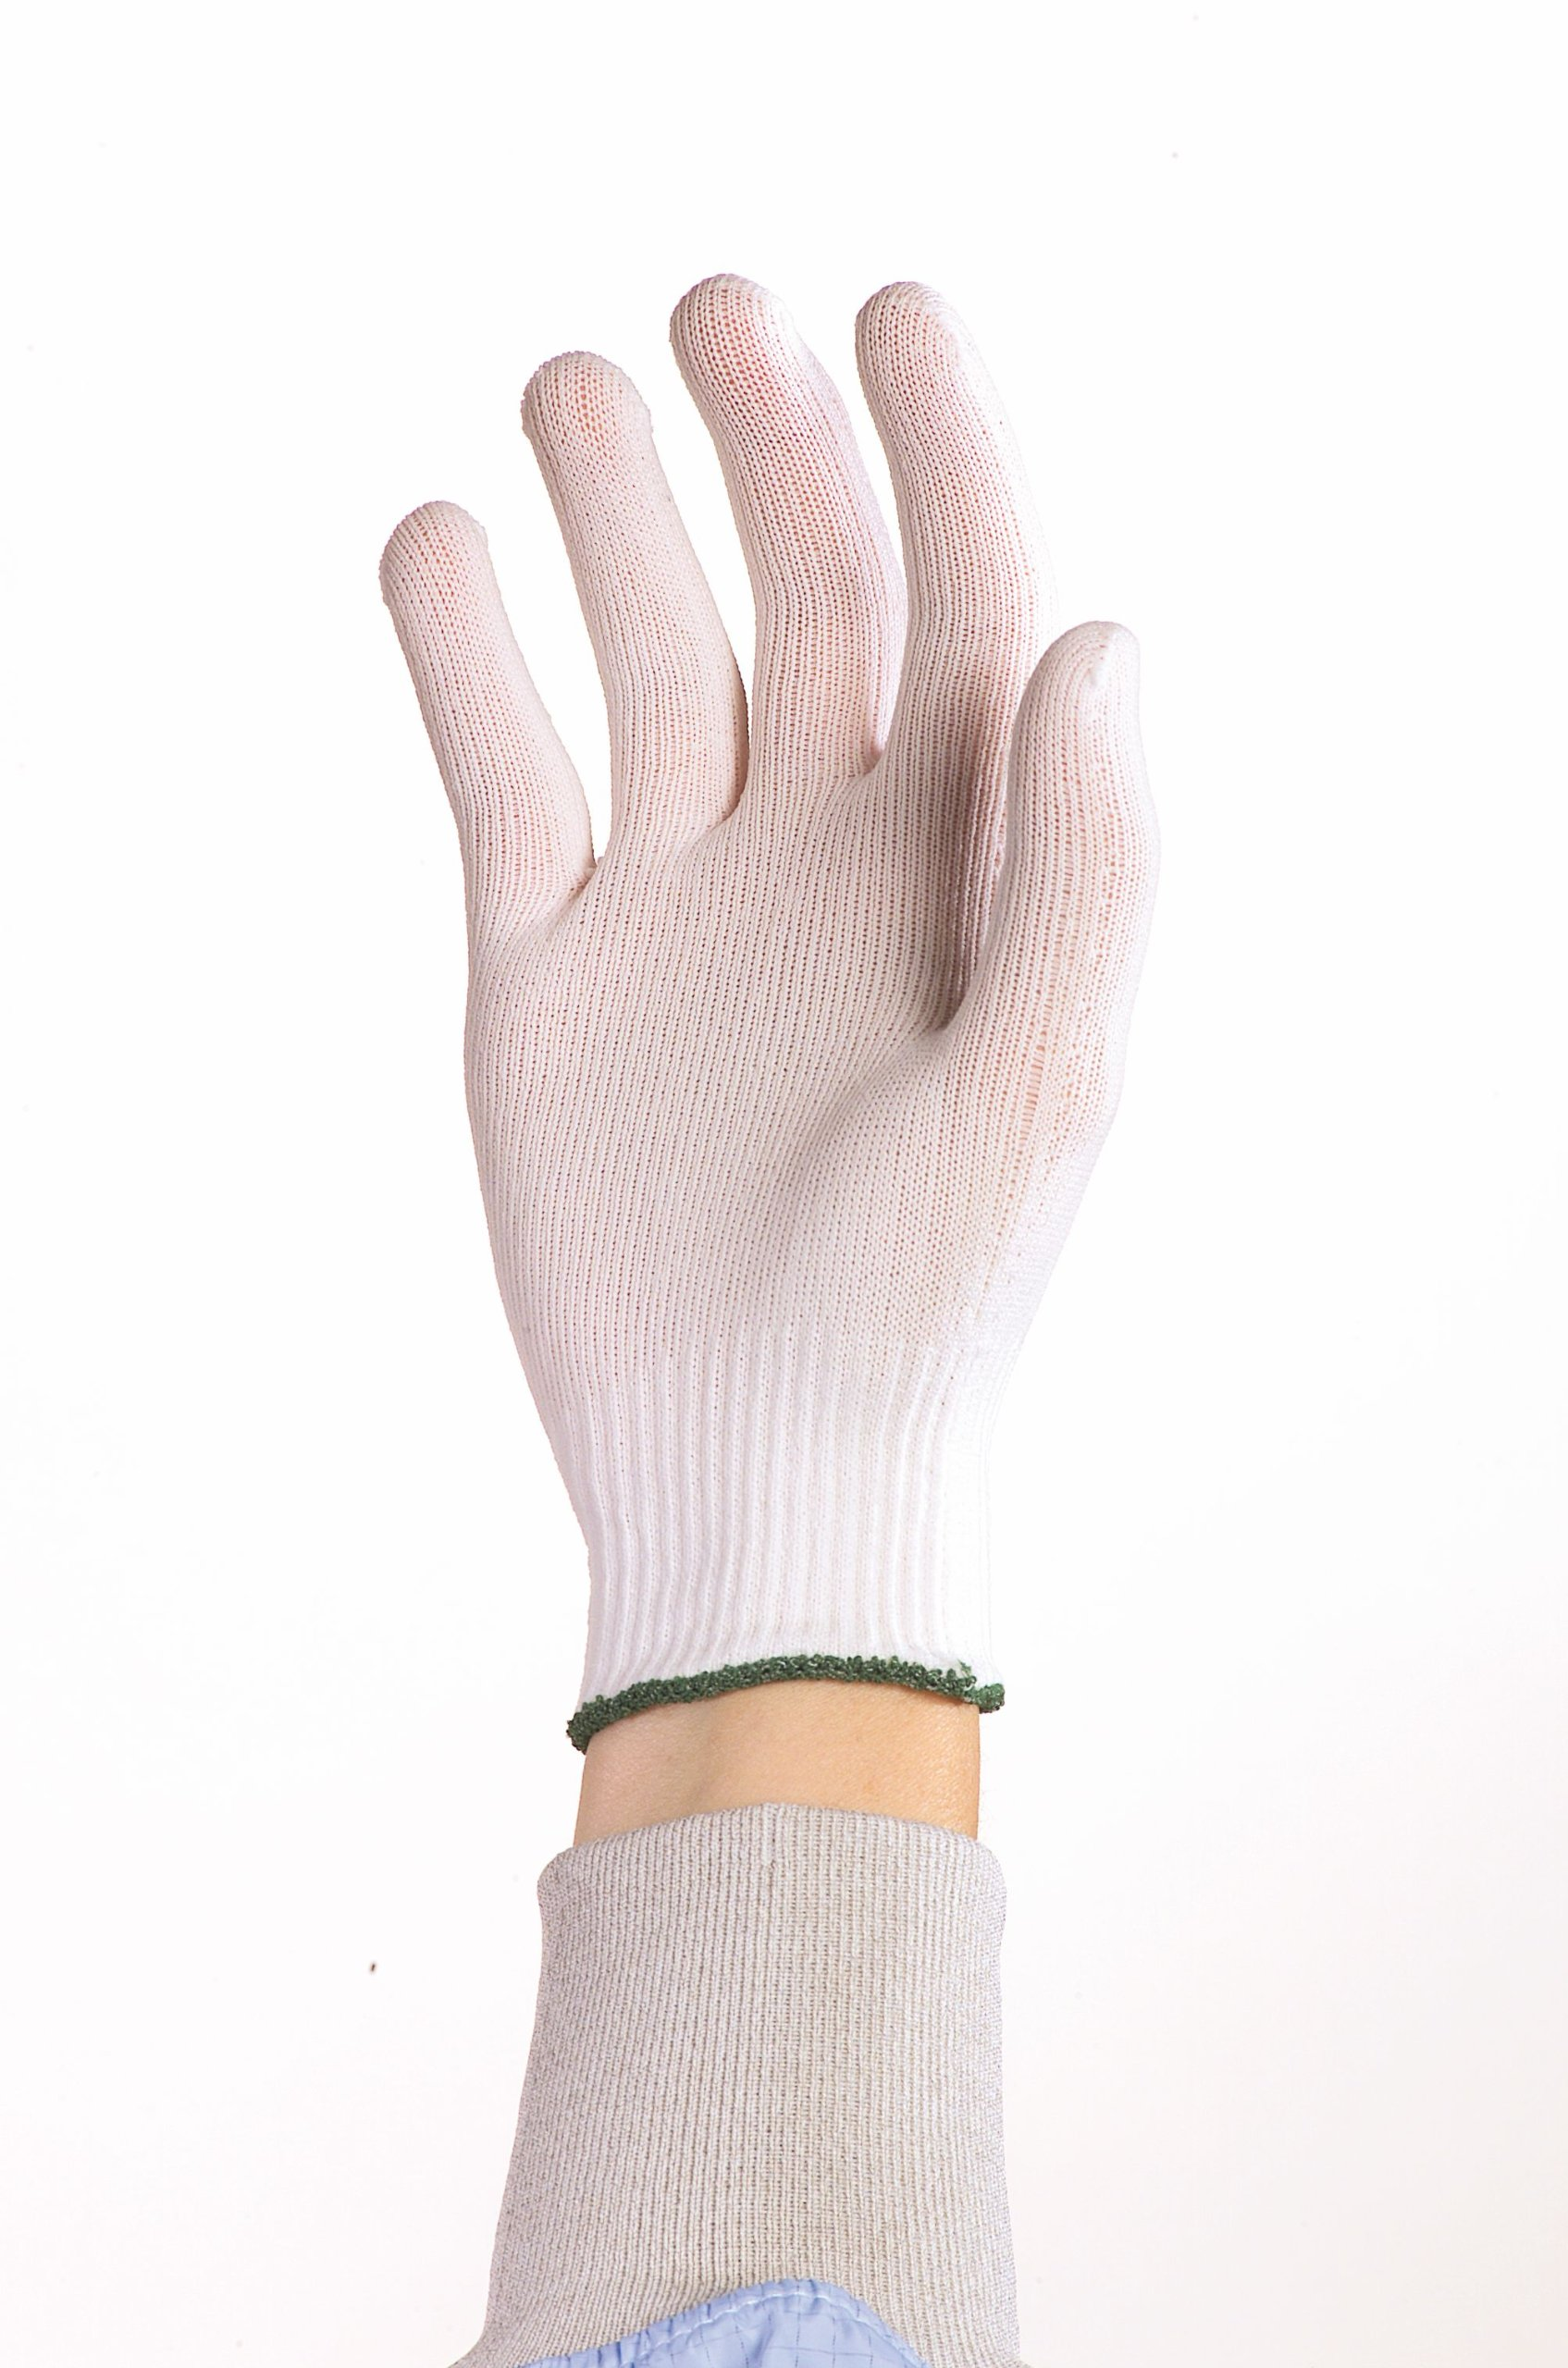 Berkshire BCR Nylon Full-Finger Glove Liners SK, Medium Bulk Size (Bulk Pack of 200 Pairs)